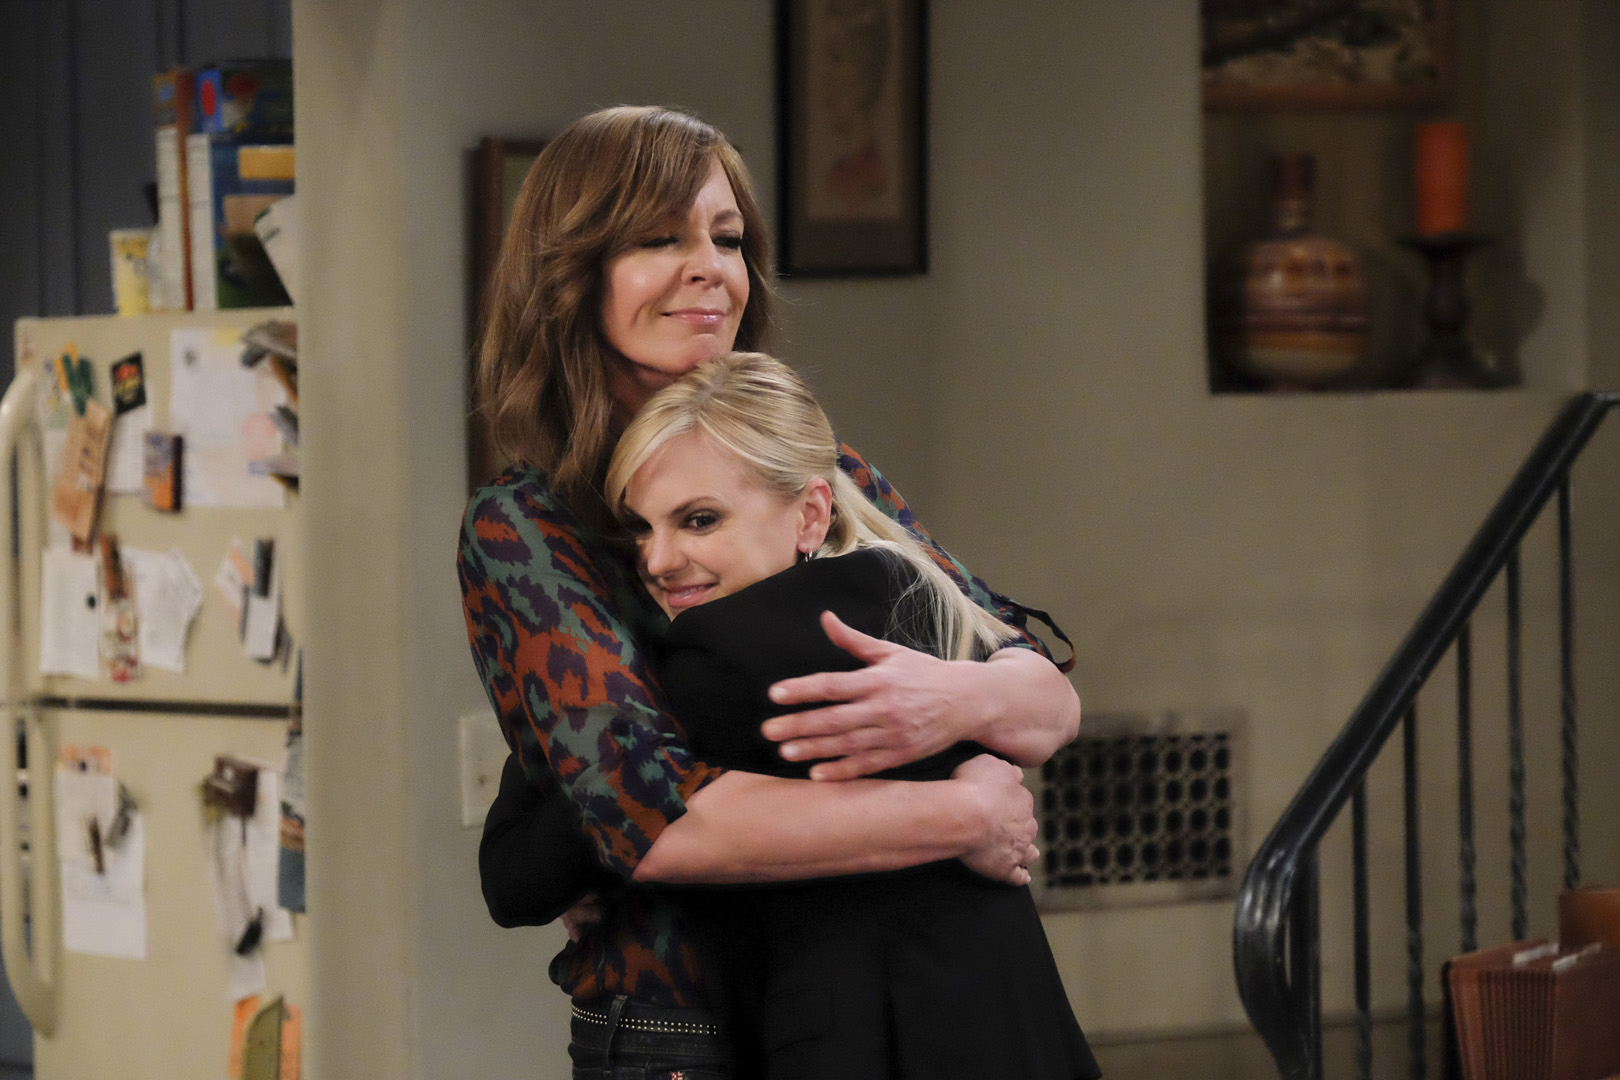 Christy wraps her arms around Bonnie when she returns to the living room.